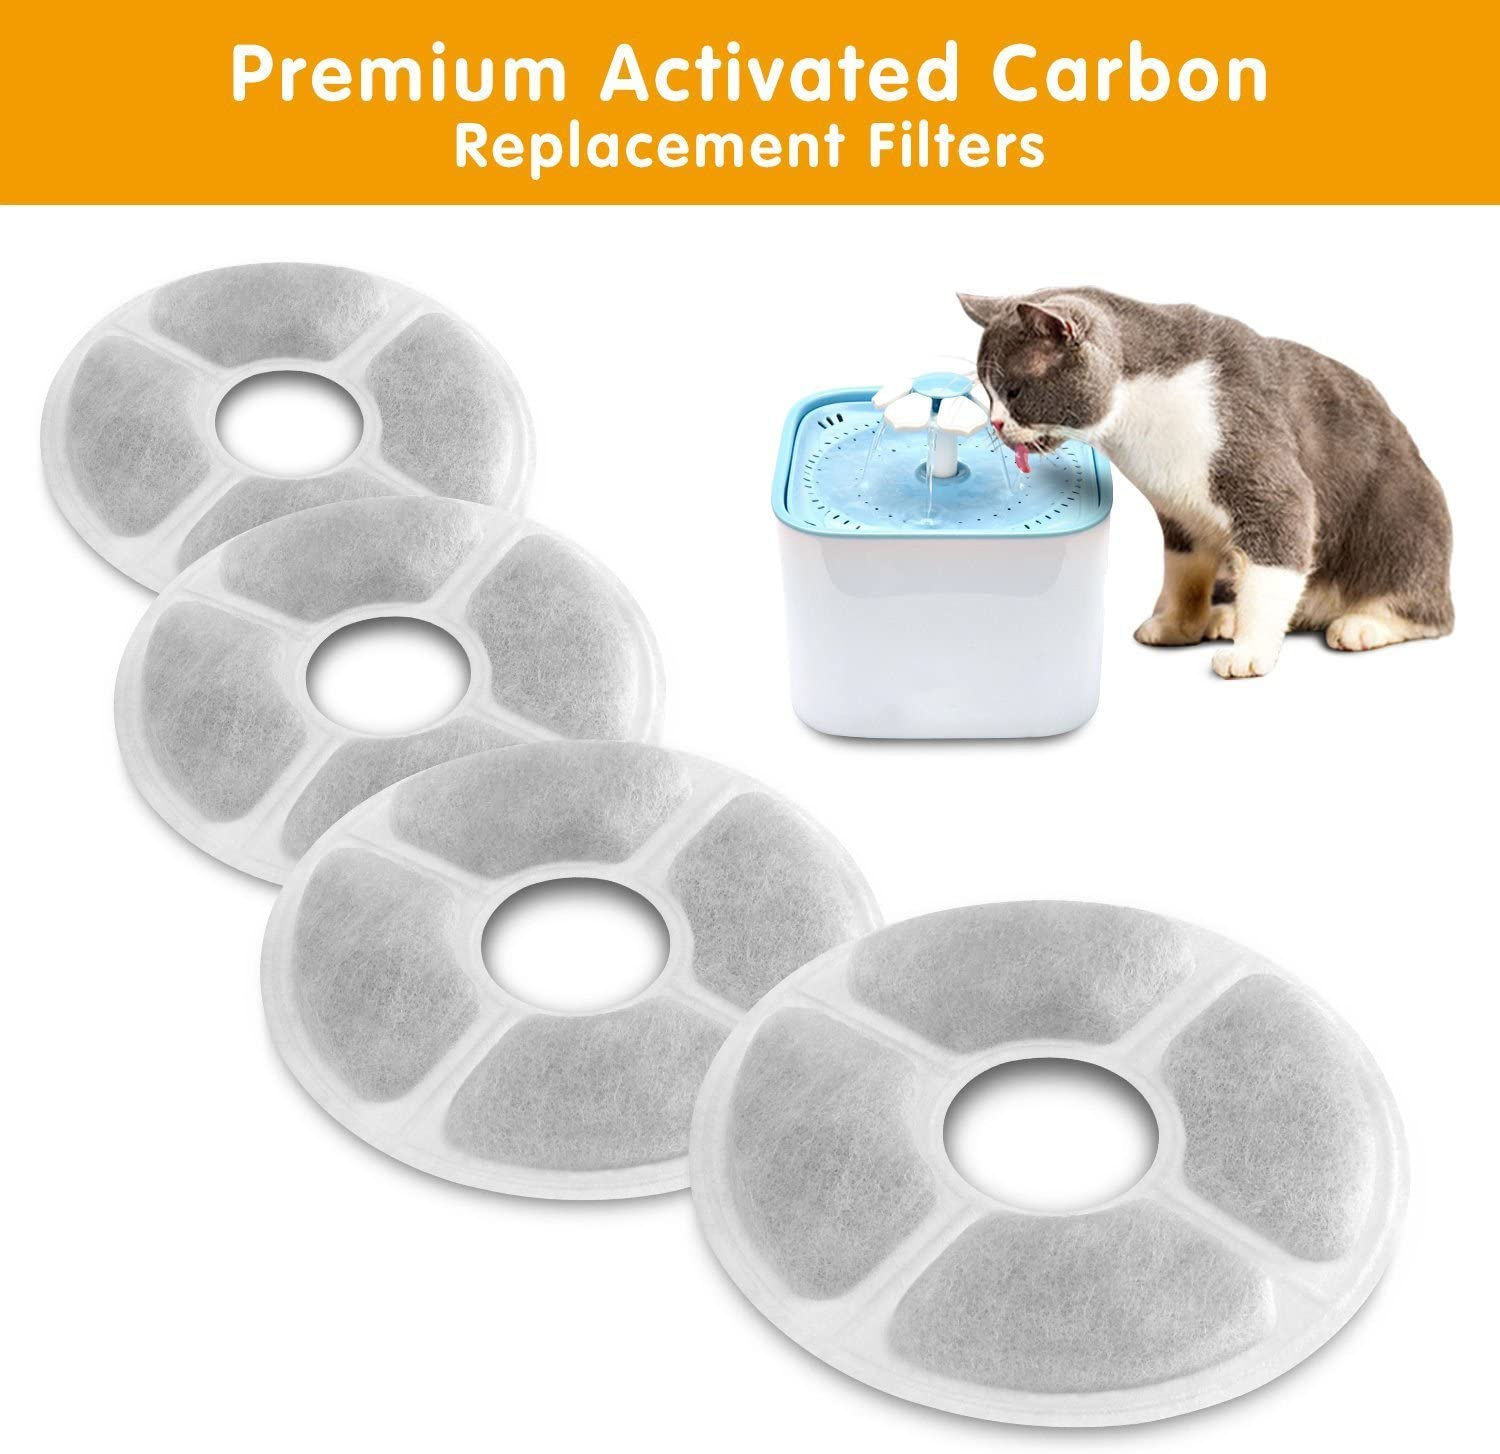 6 Packs Concentrated Carbon Technology Filters for MOSPRO Cat and Dog Automatic Flower Water Dispenser MOSPRO Carbon Replacement Filters for Pet Fountain